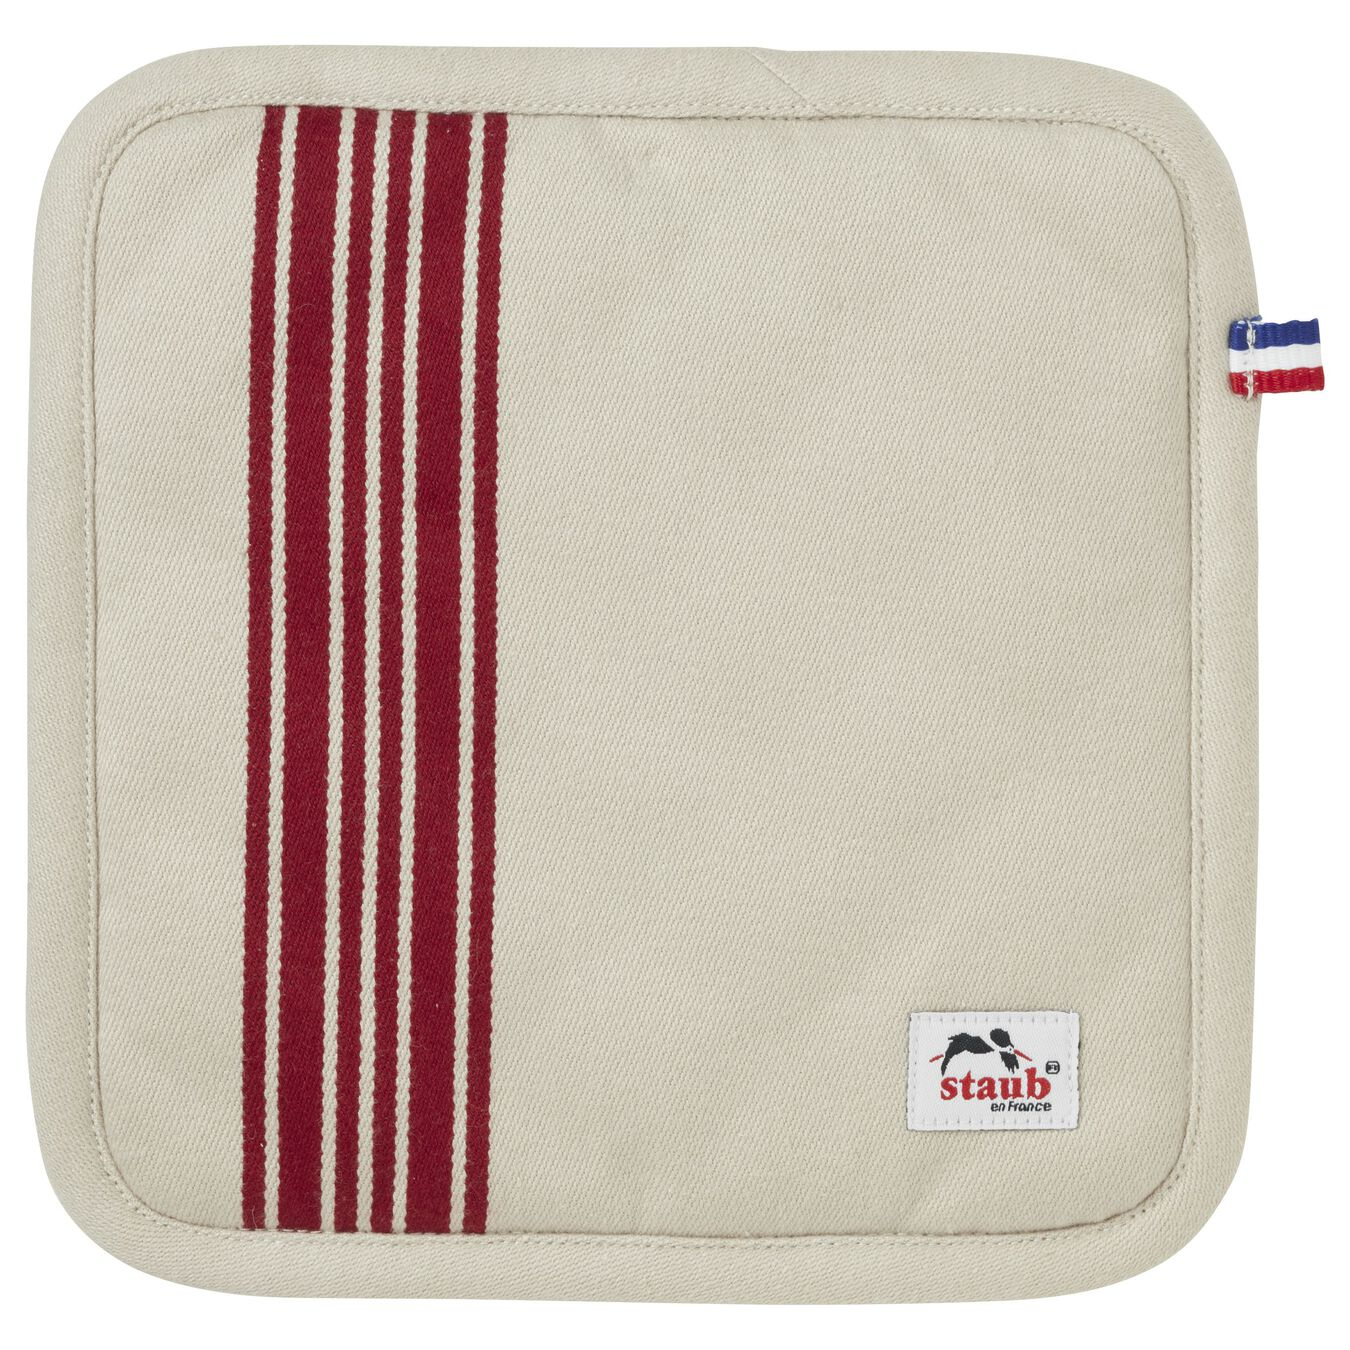 2 Piece Cotton Pot holder set, cherry,,large 1